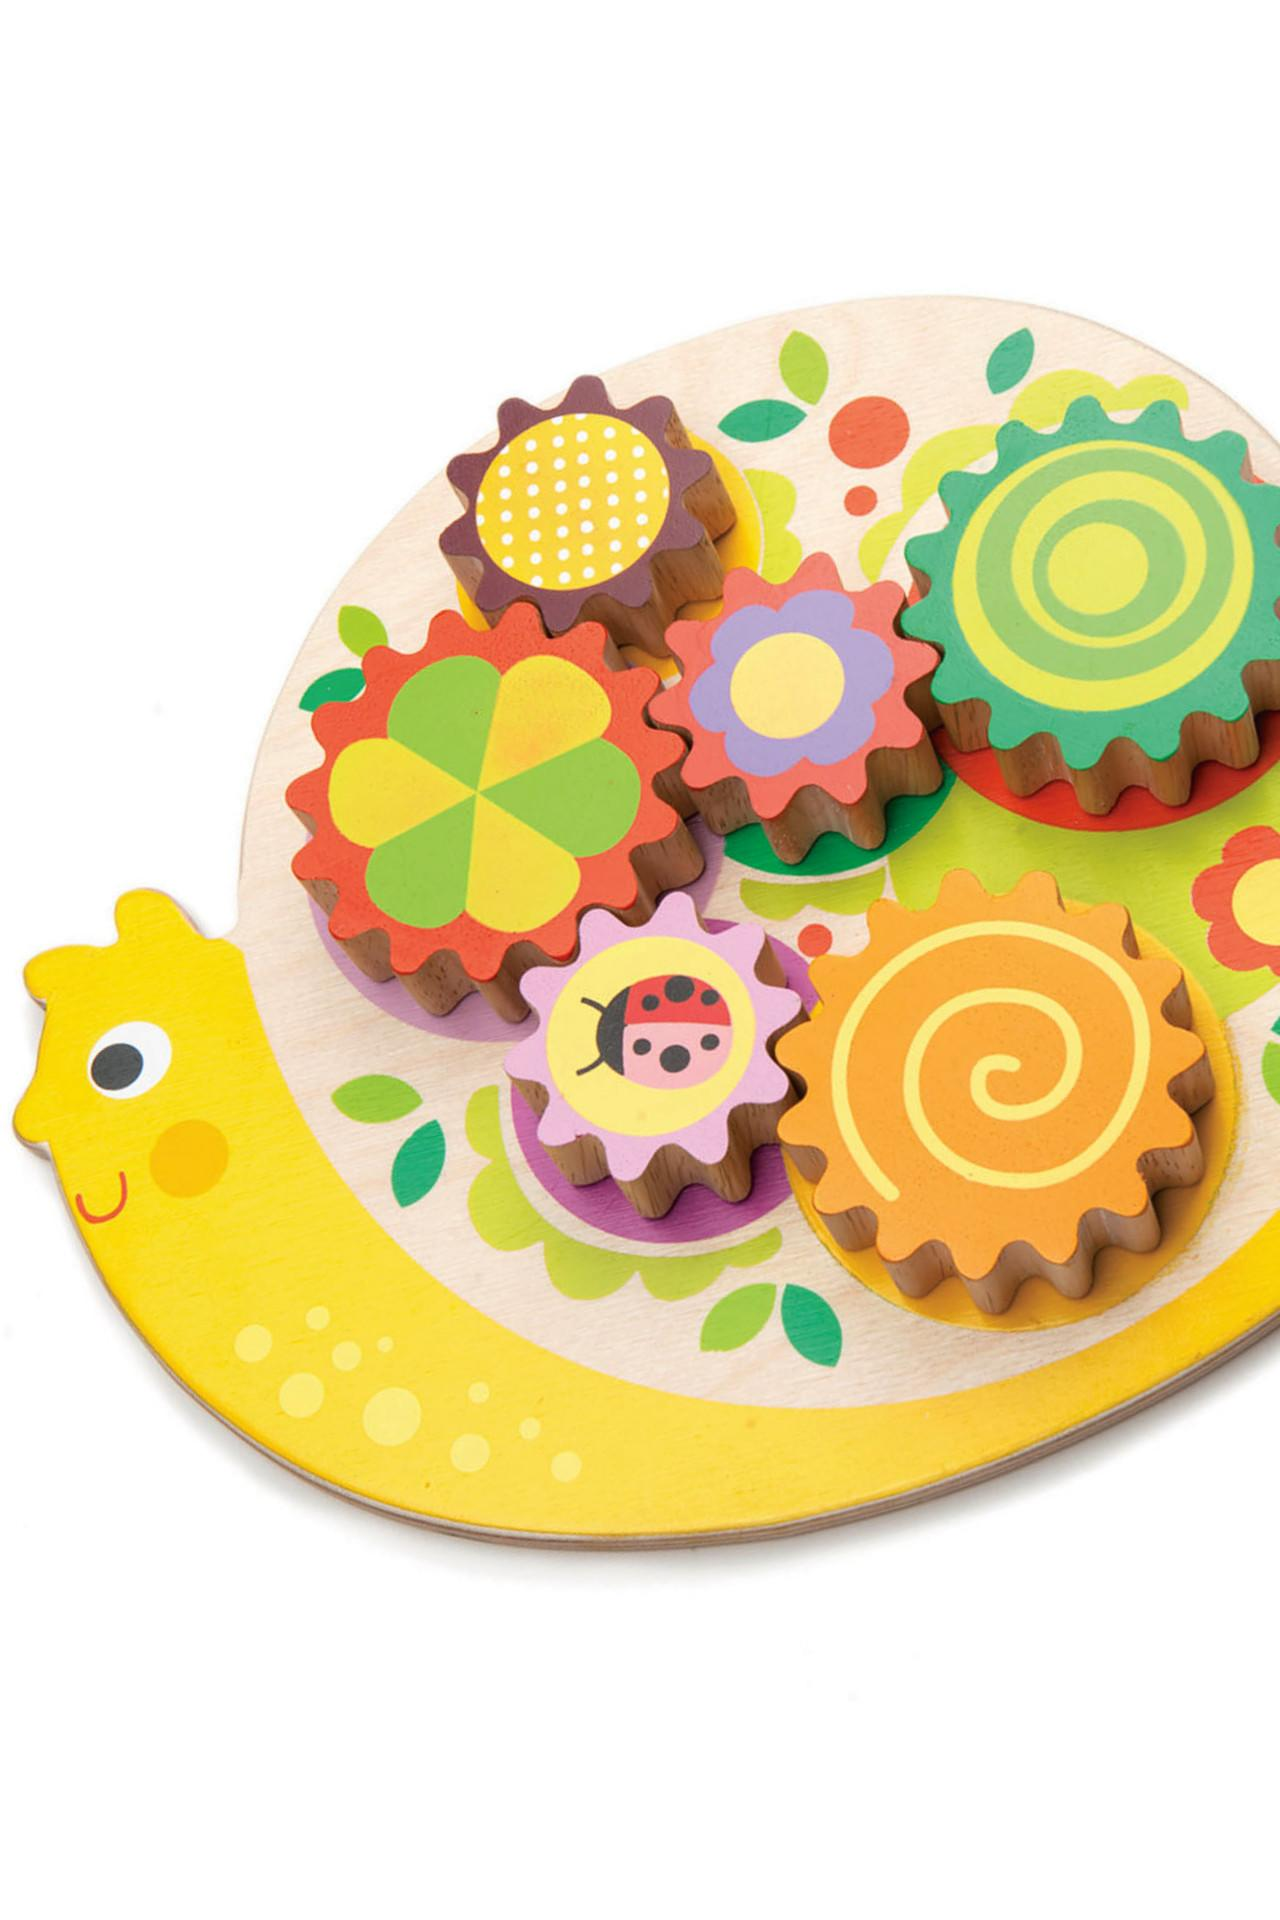 New Wooden Snail with 6 Placeable Colourful Cogs that Turn #2